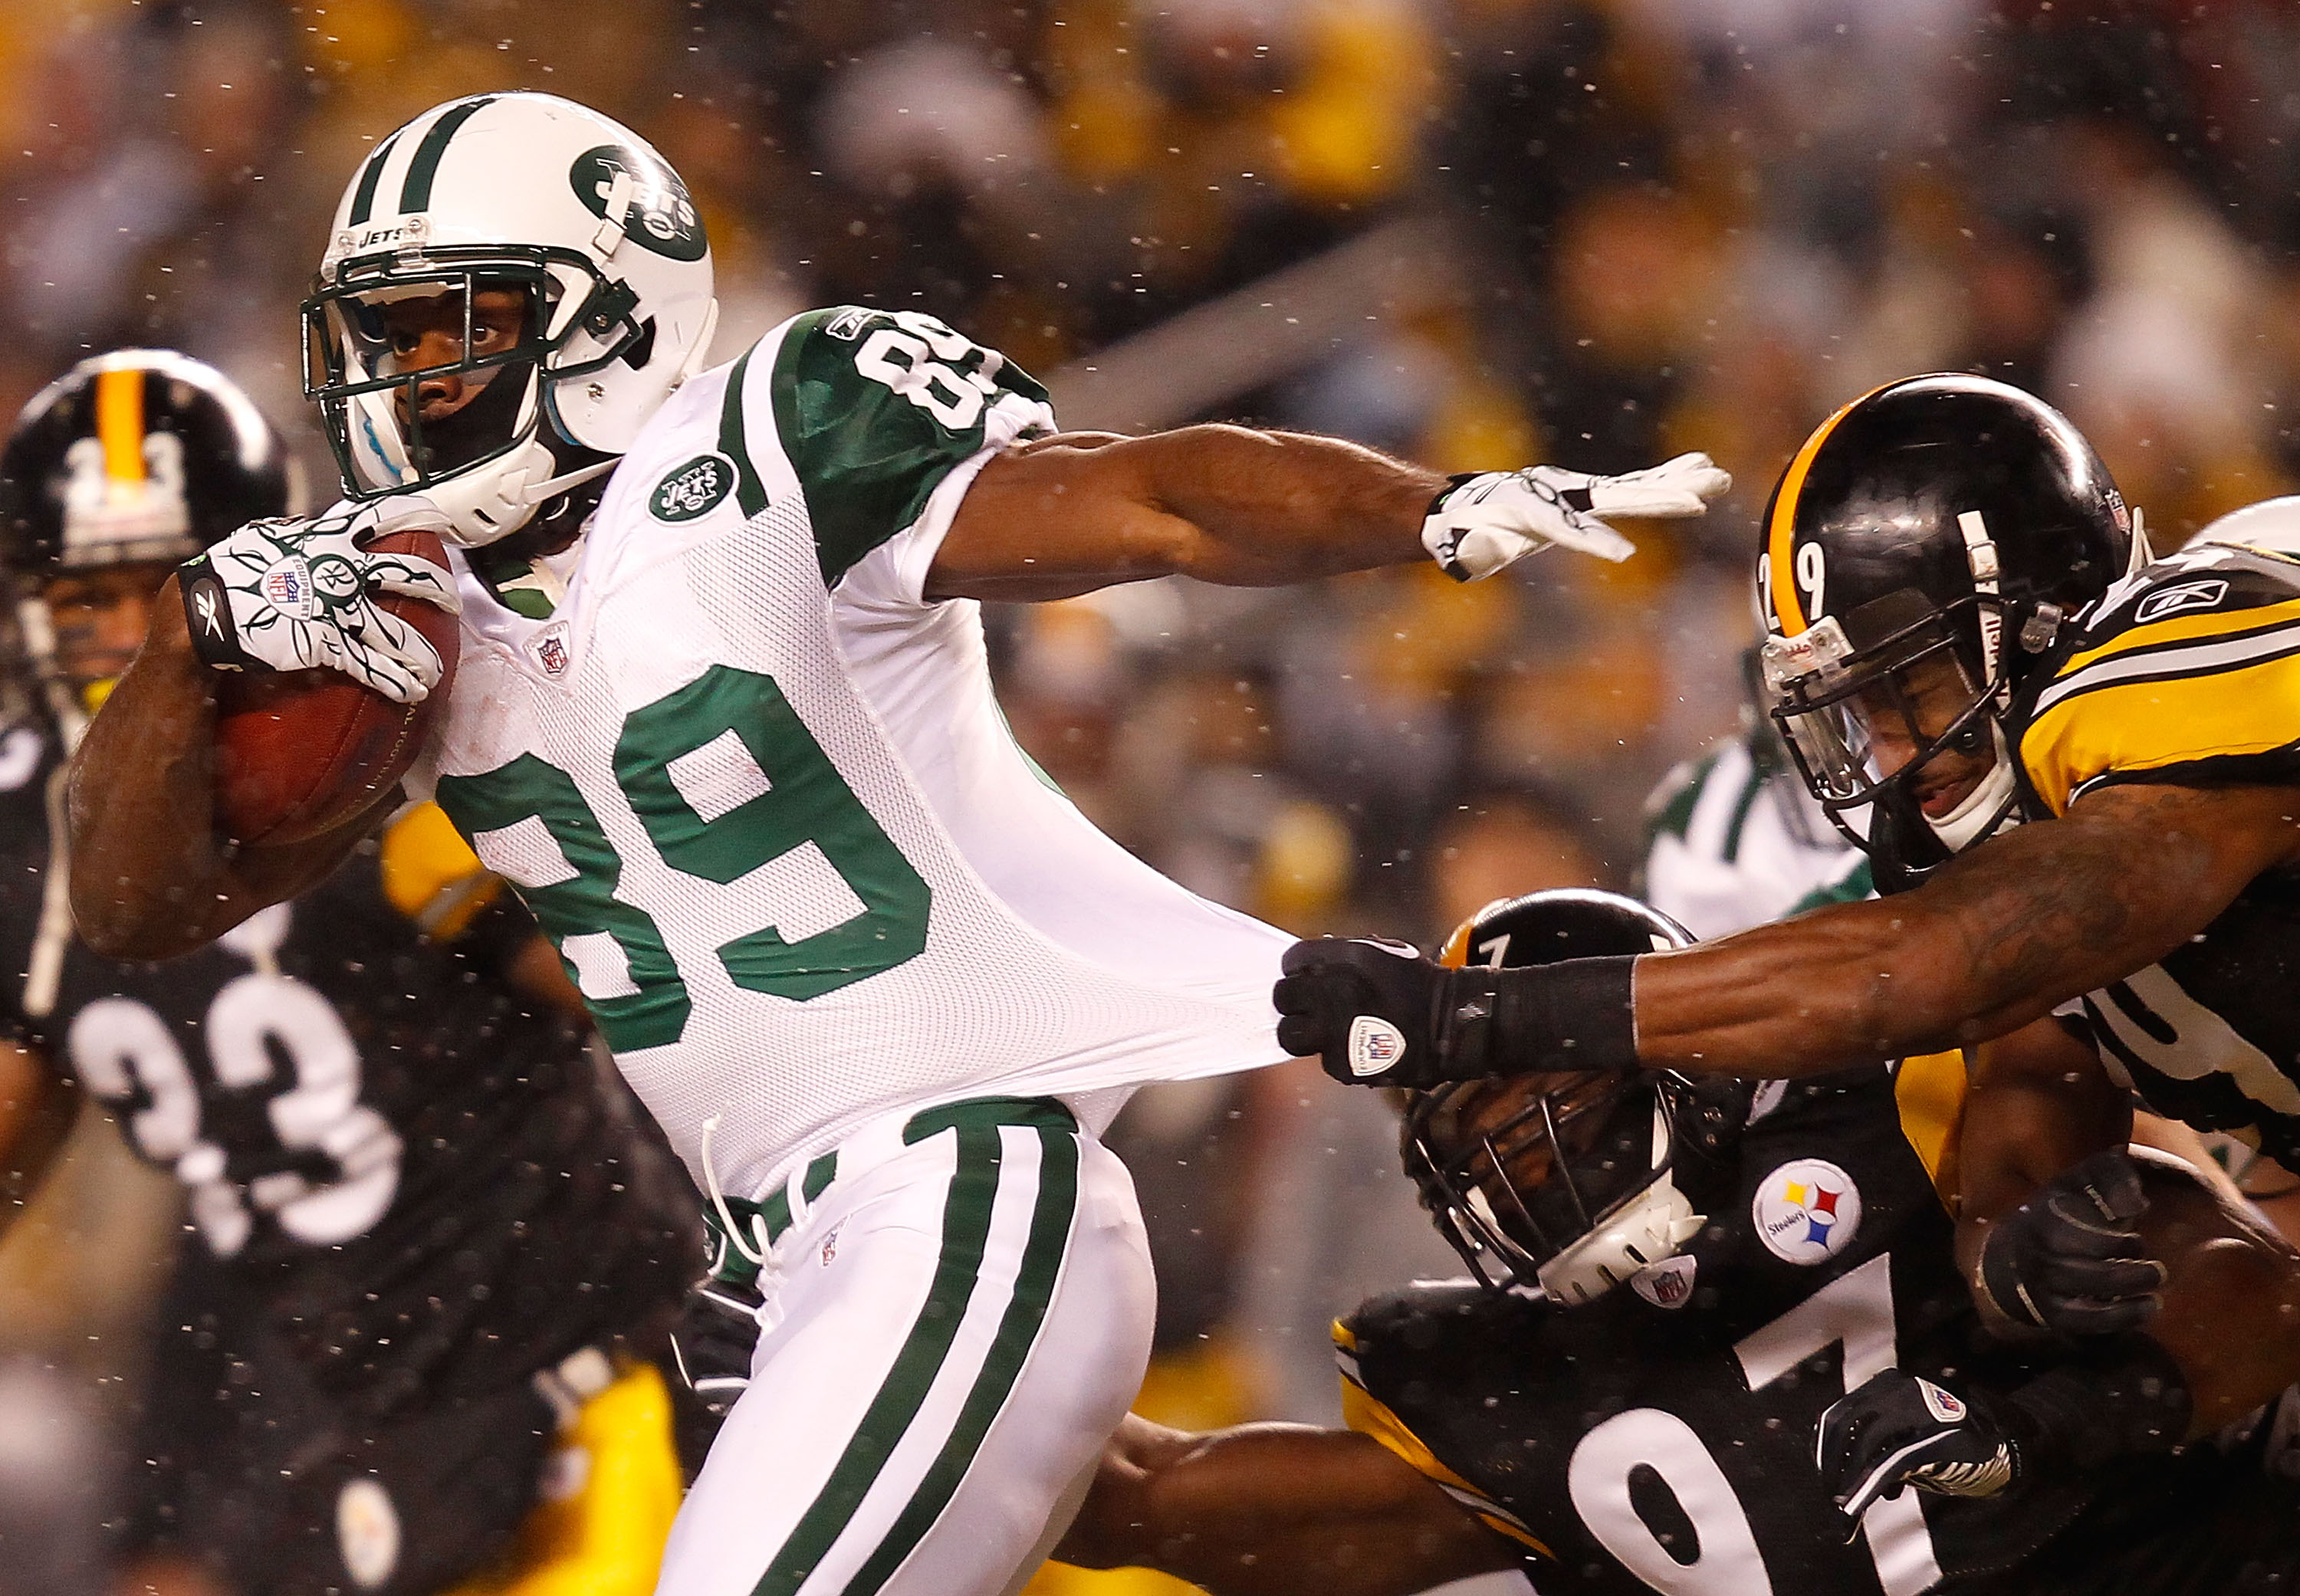 PITTSBURGH - DECEMBER 19:  Jerricho Cotchery #89 of the New York Jets runs through a tackle by Ryan Mundy #29 of the Pittsburgh Steelers during the game on December 19, 2010 at Heinz Field in Pittsburgh, Pennsylvania.  (Photo by Jared Wickerham/Getty Imag